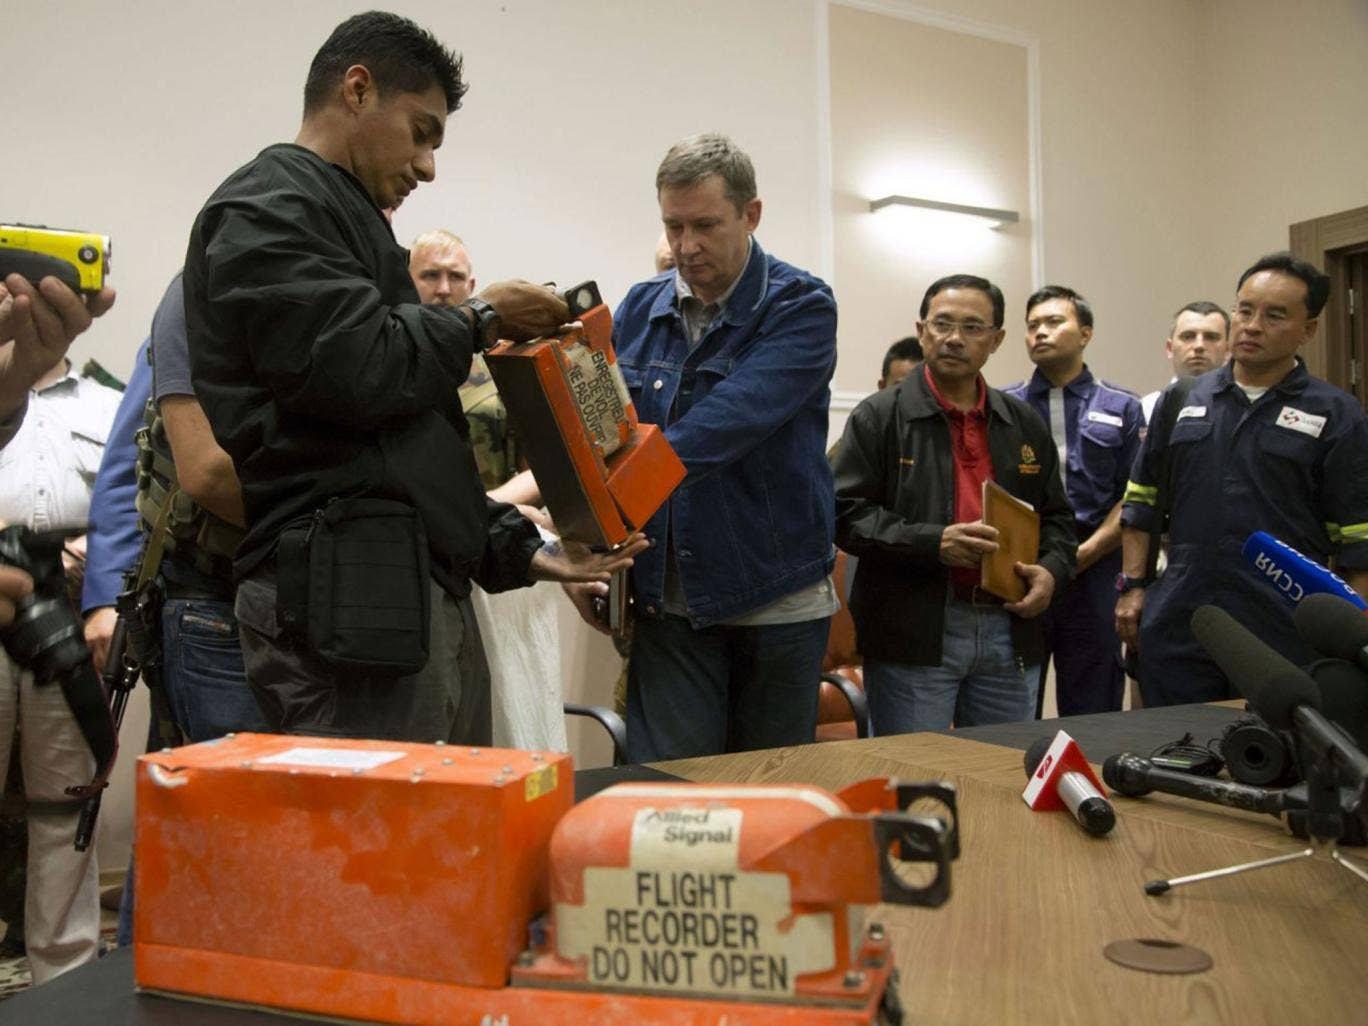 A Donetsk People's Republic official, right, hands over a flight recorder to a Malaysian investigator